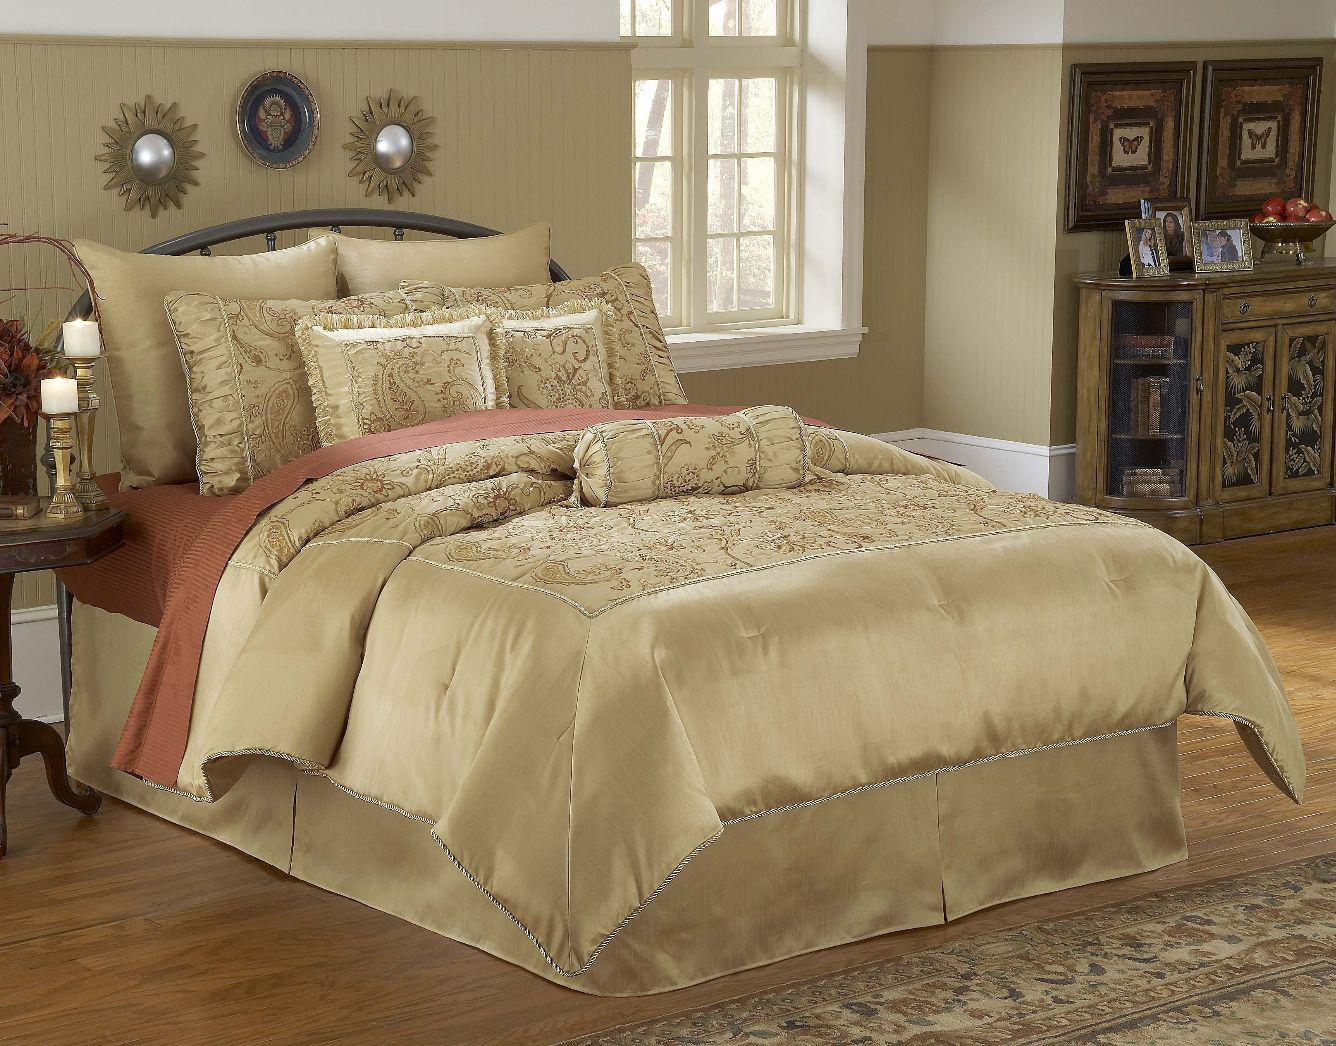 Image of: Master Bedroom Comforter Sets